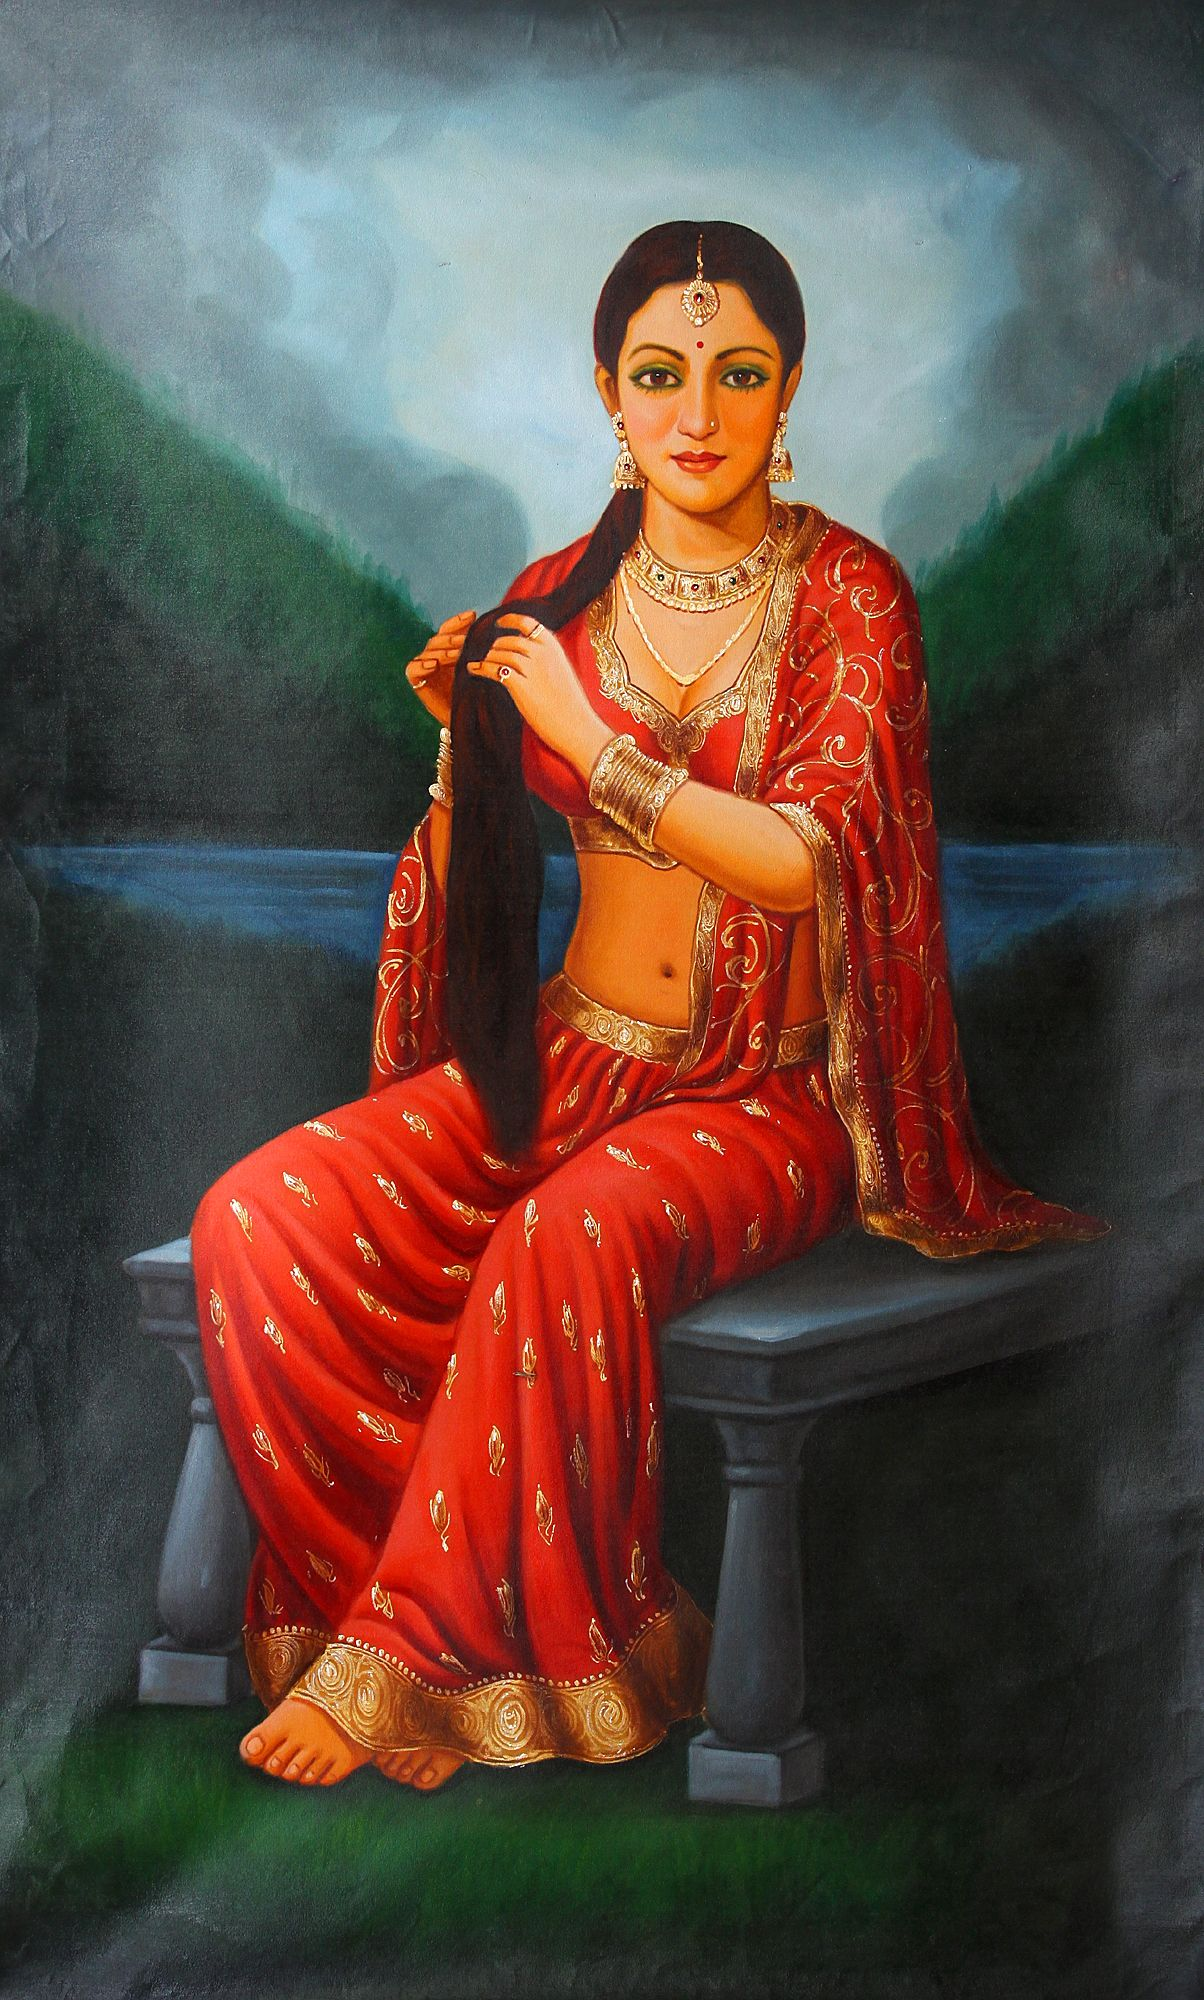 140Indian paintings image by Katayoonarts Indian women